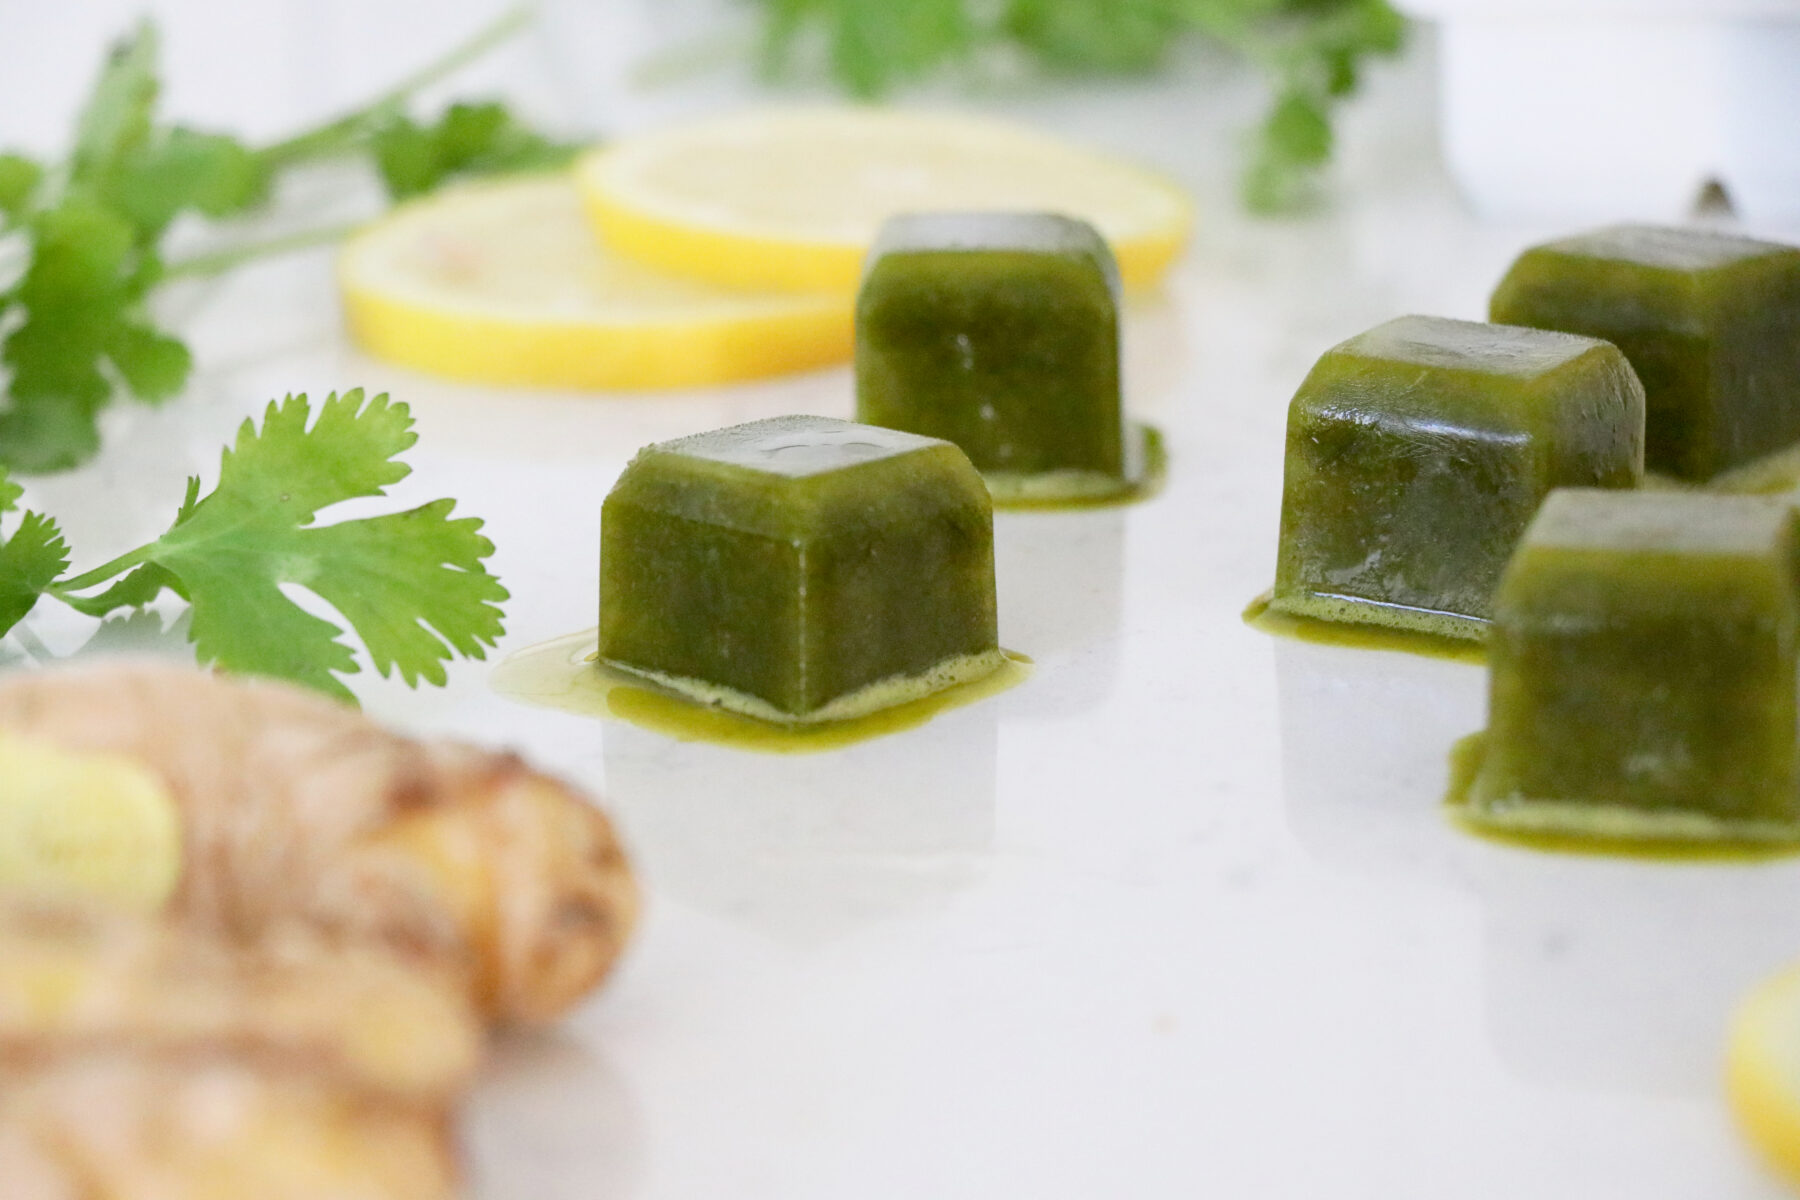 Frozen smoothie cubes, ginger, lemon slices and cilantro.